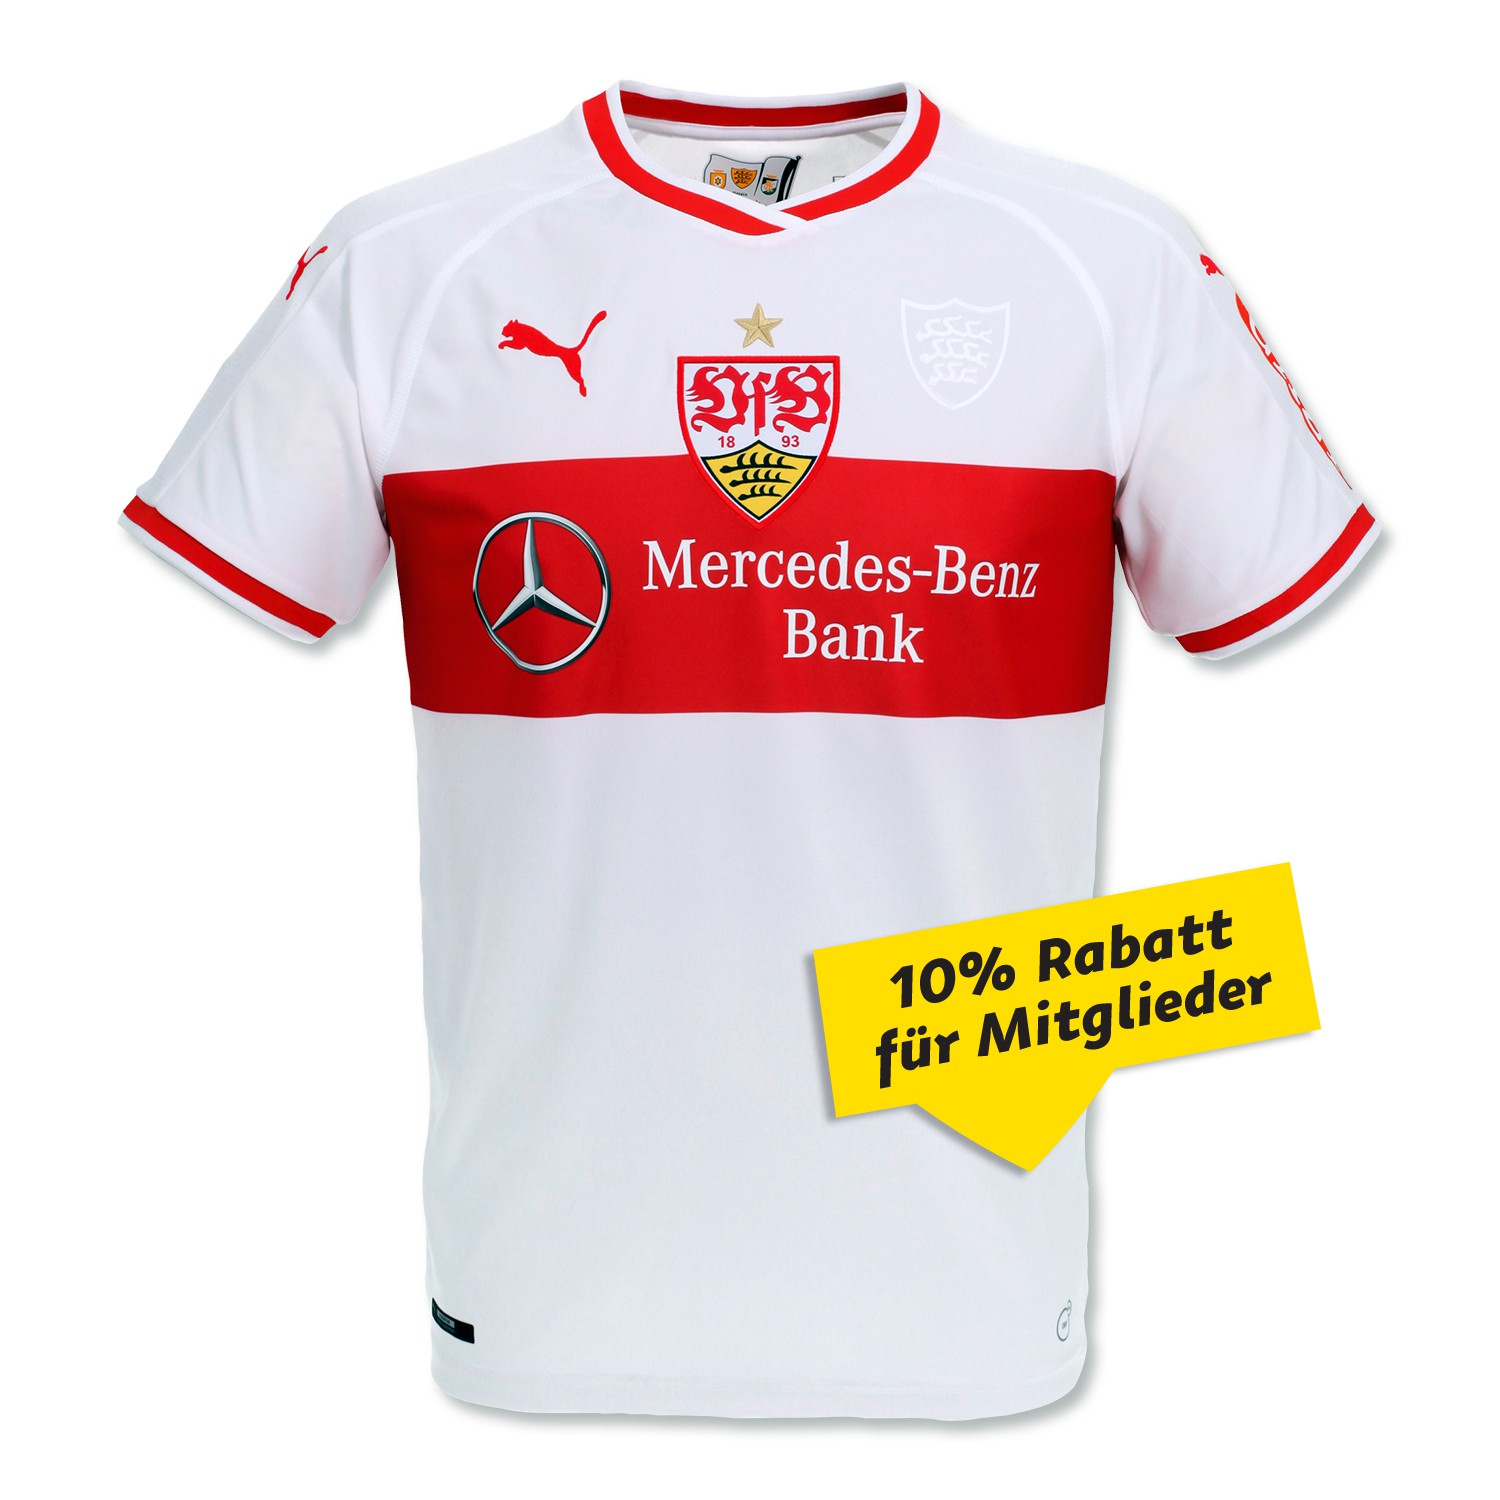 vfb stuttgart 18 19 puma home kit 18 19 kits football. Black Bedroom Furniture Sets. Home Design Ideas